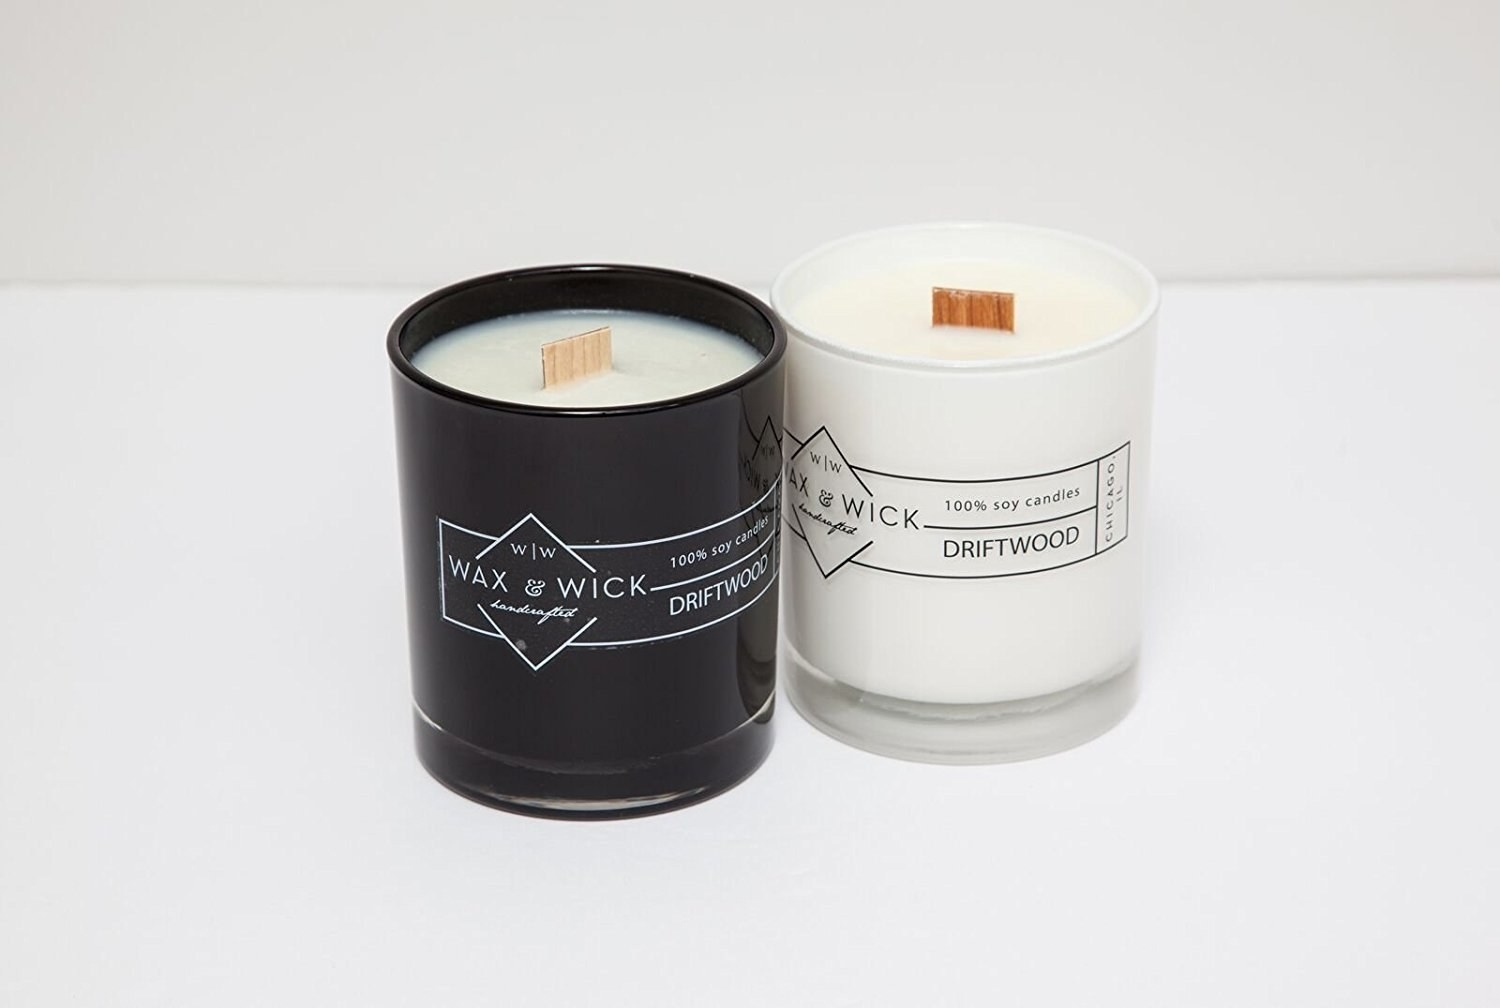 black and white candles with flat wooden wicks